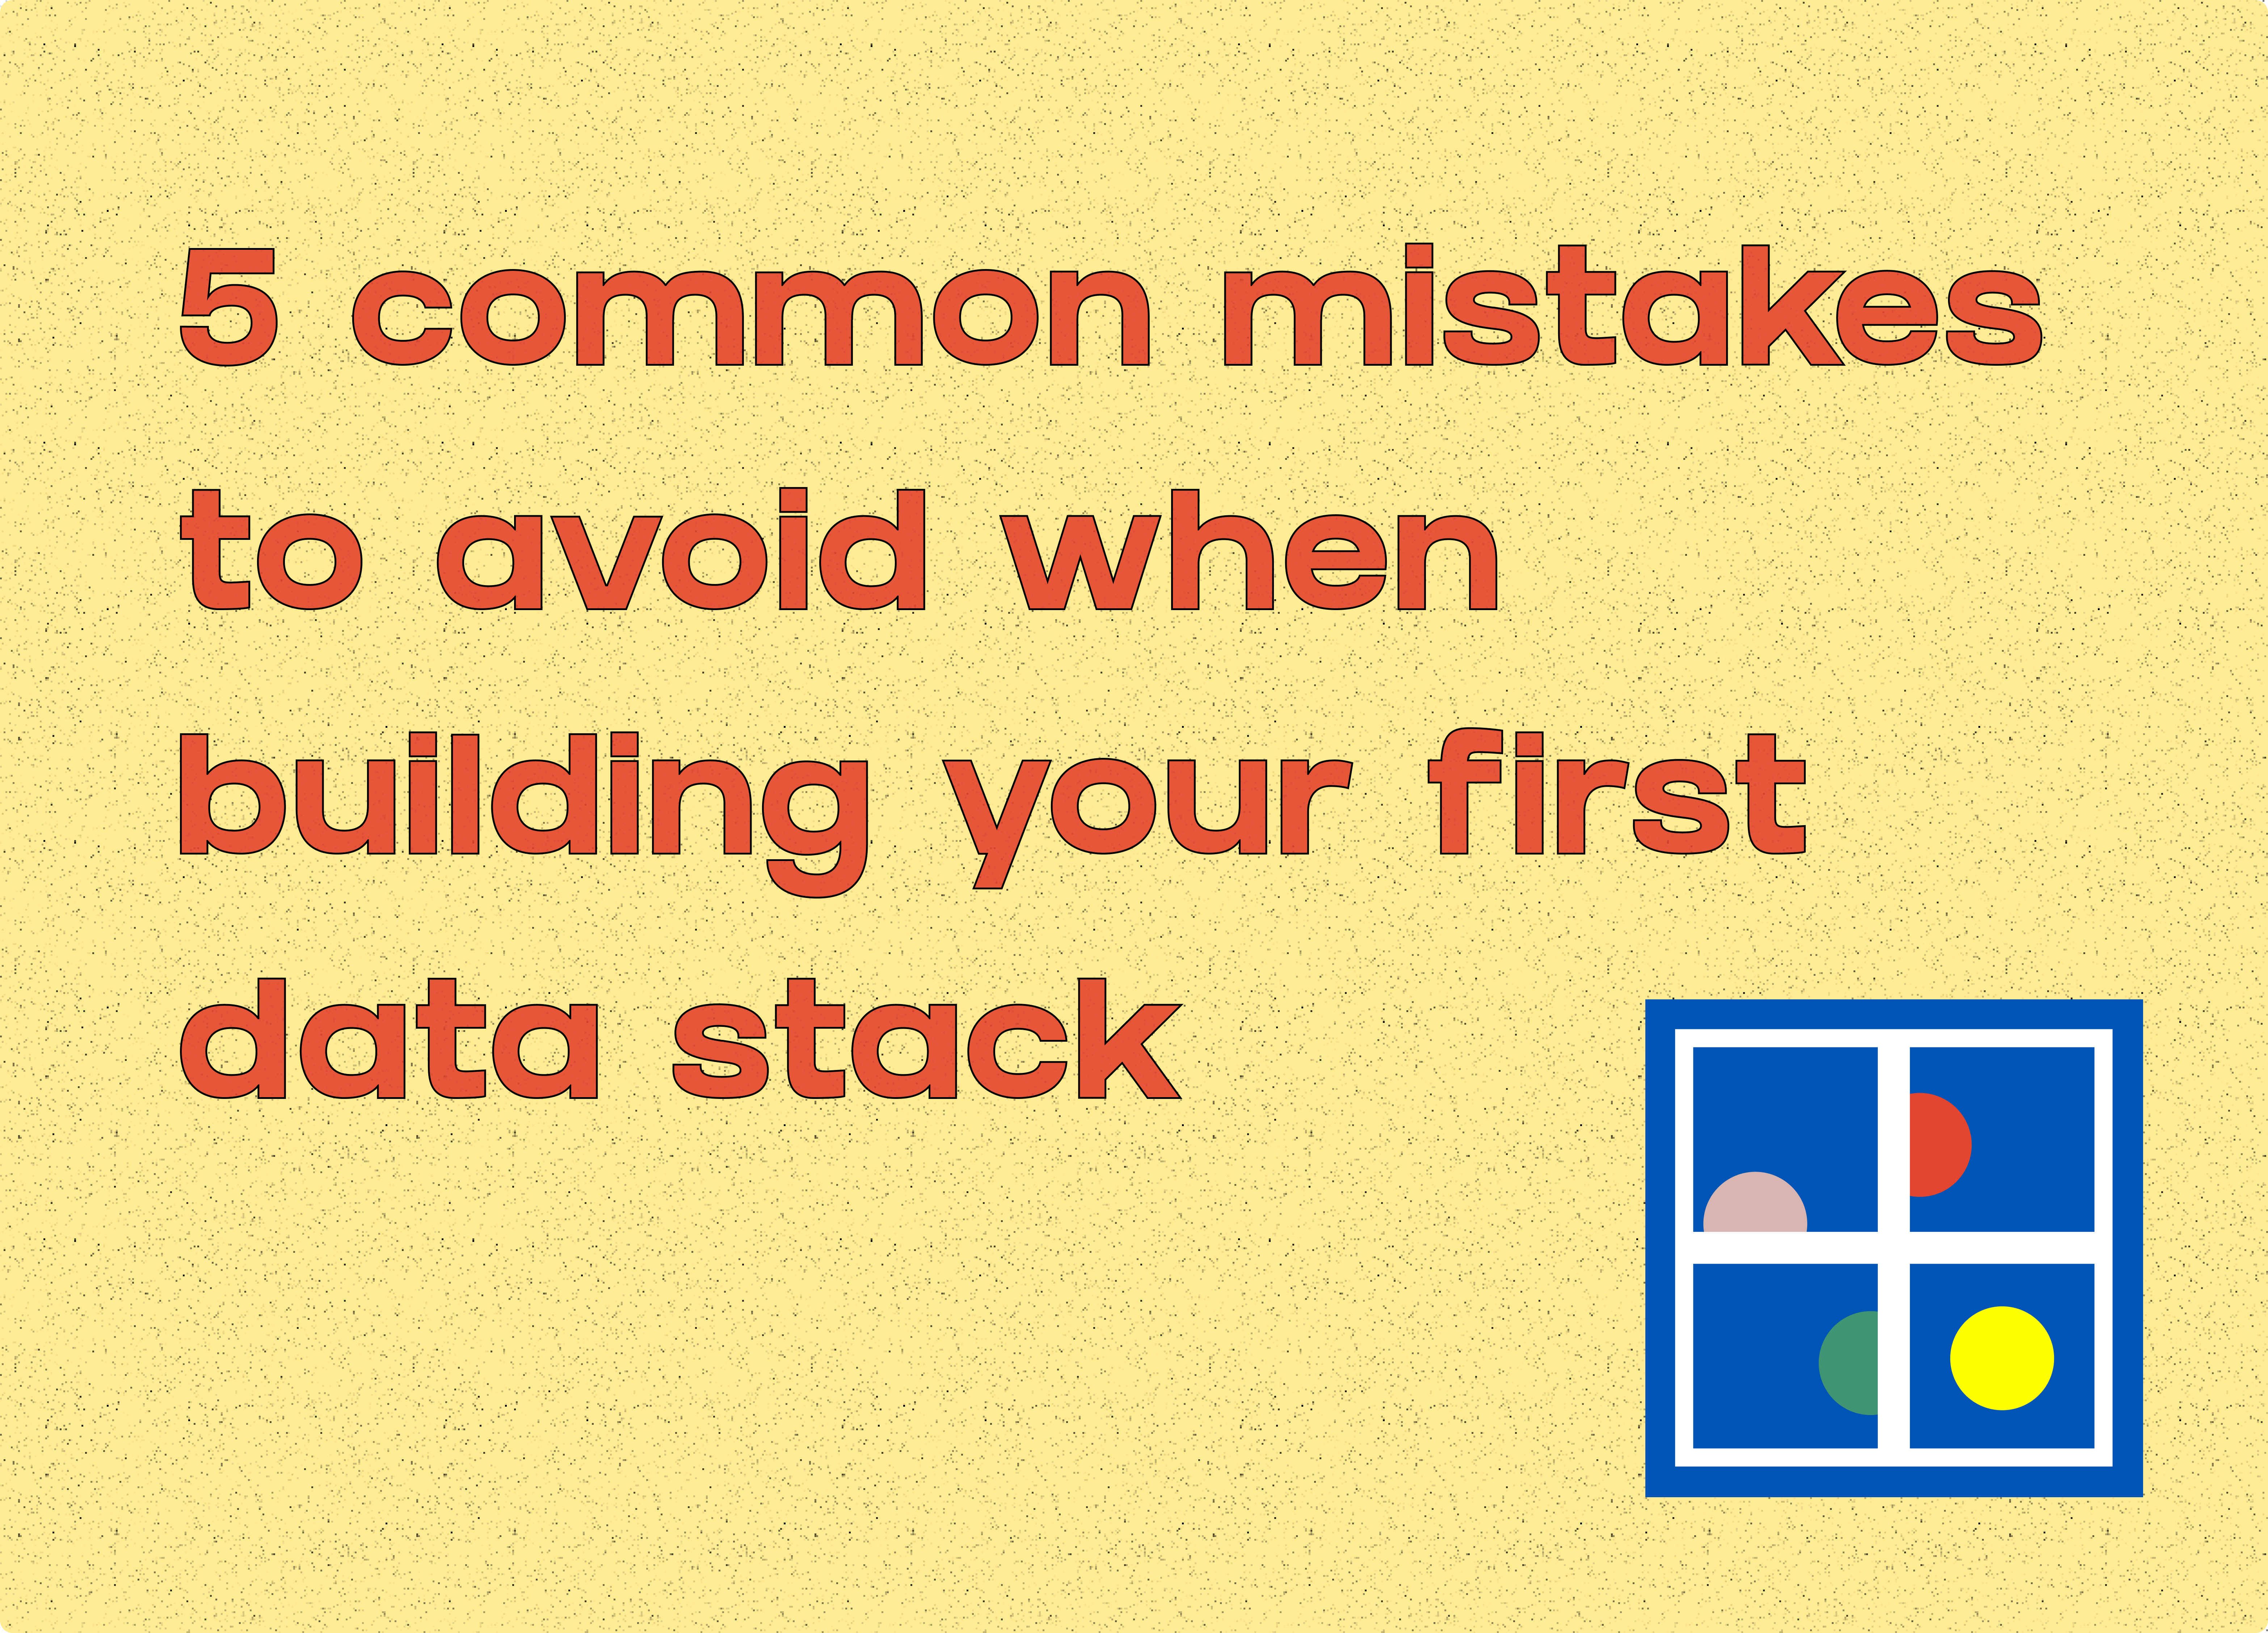 5 Common Mistakes to Avoid When Building Your First Data Stack